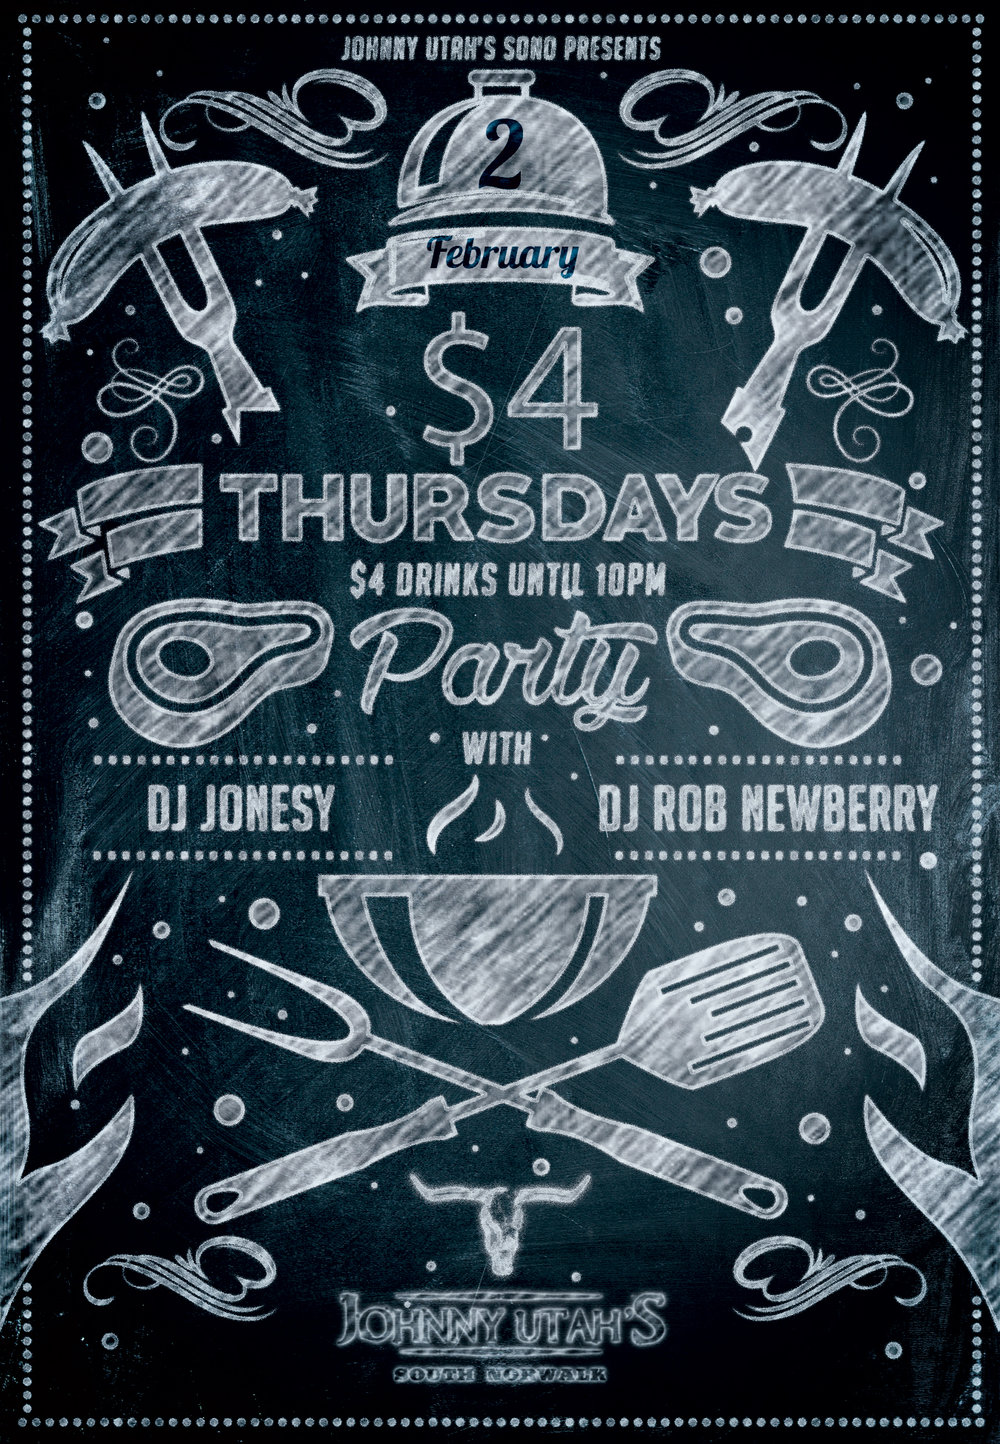 THIS THURSDAY, FEBRUARY 2ND MEET ME AT JOHNNY UTAH'S IN SOUTH NORWALK FOR $4 THURSDAYS.  ALL DRINKS ARE $4 UNTIL 10PM.  MUSIC BY DJ ROB NEWBERRY & MYSELF STARTS AT 9PM.  GREAT MUSIC, FOOD, DRINKS & OF COURSE THE MECHANICAL BULL!  HOPE TO SEE EVERYONE THERE!